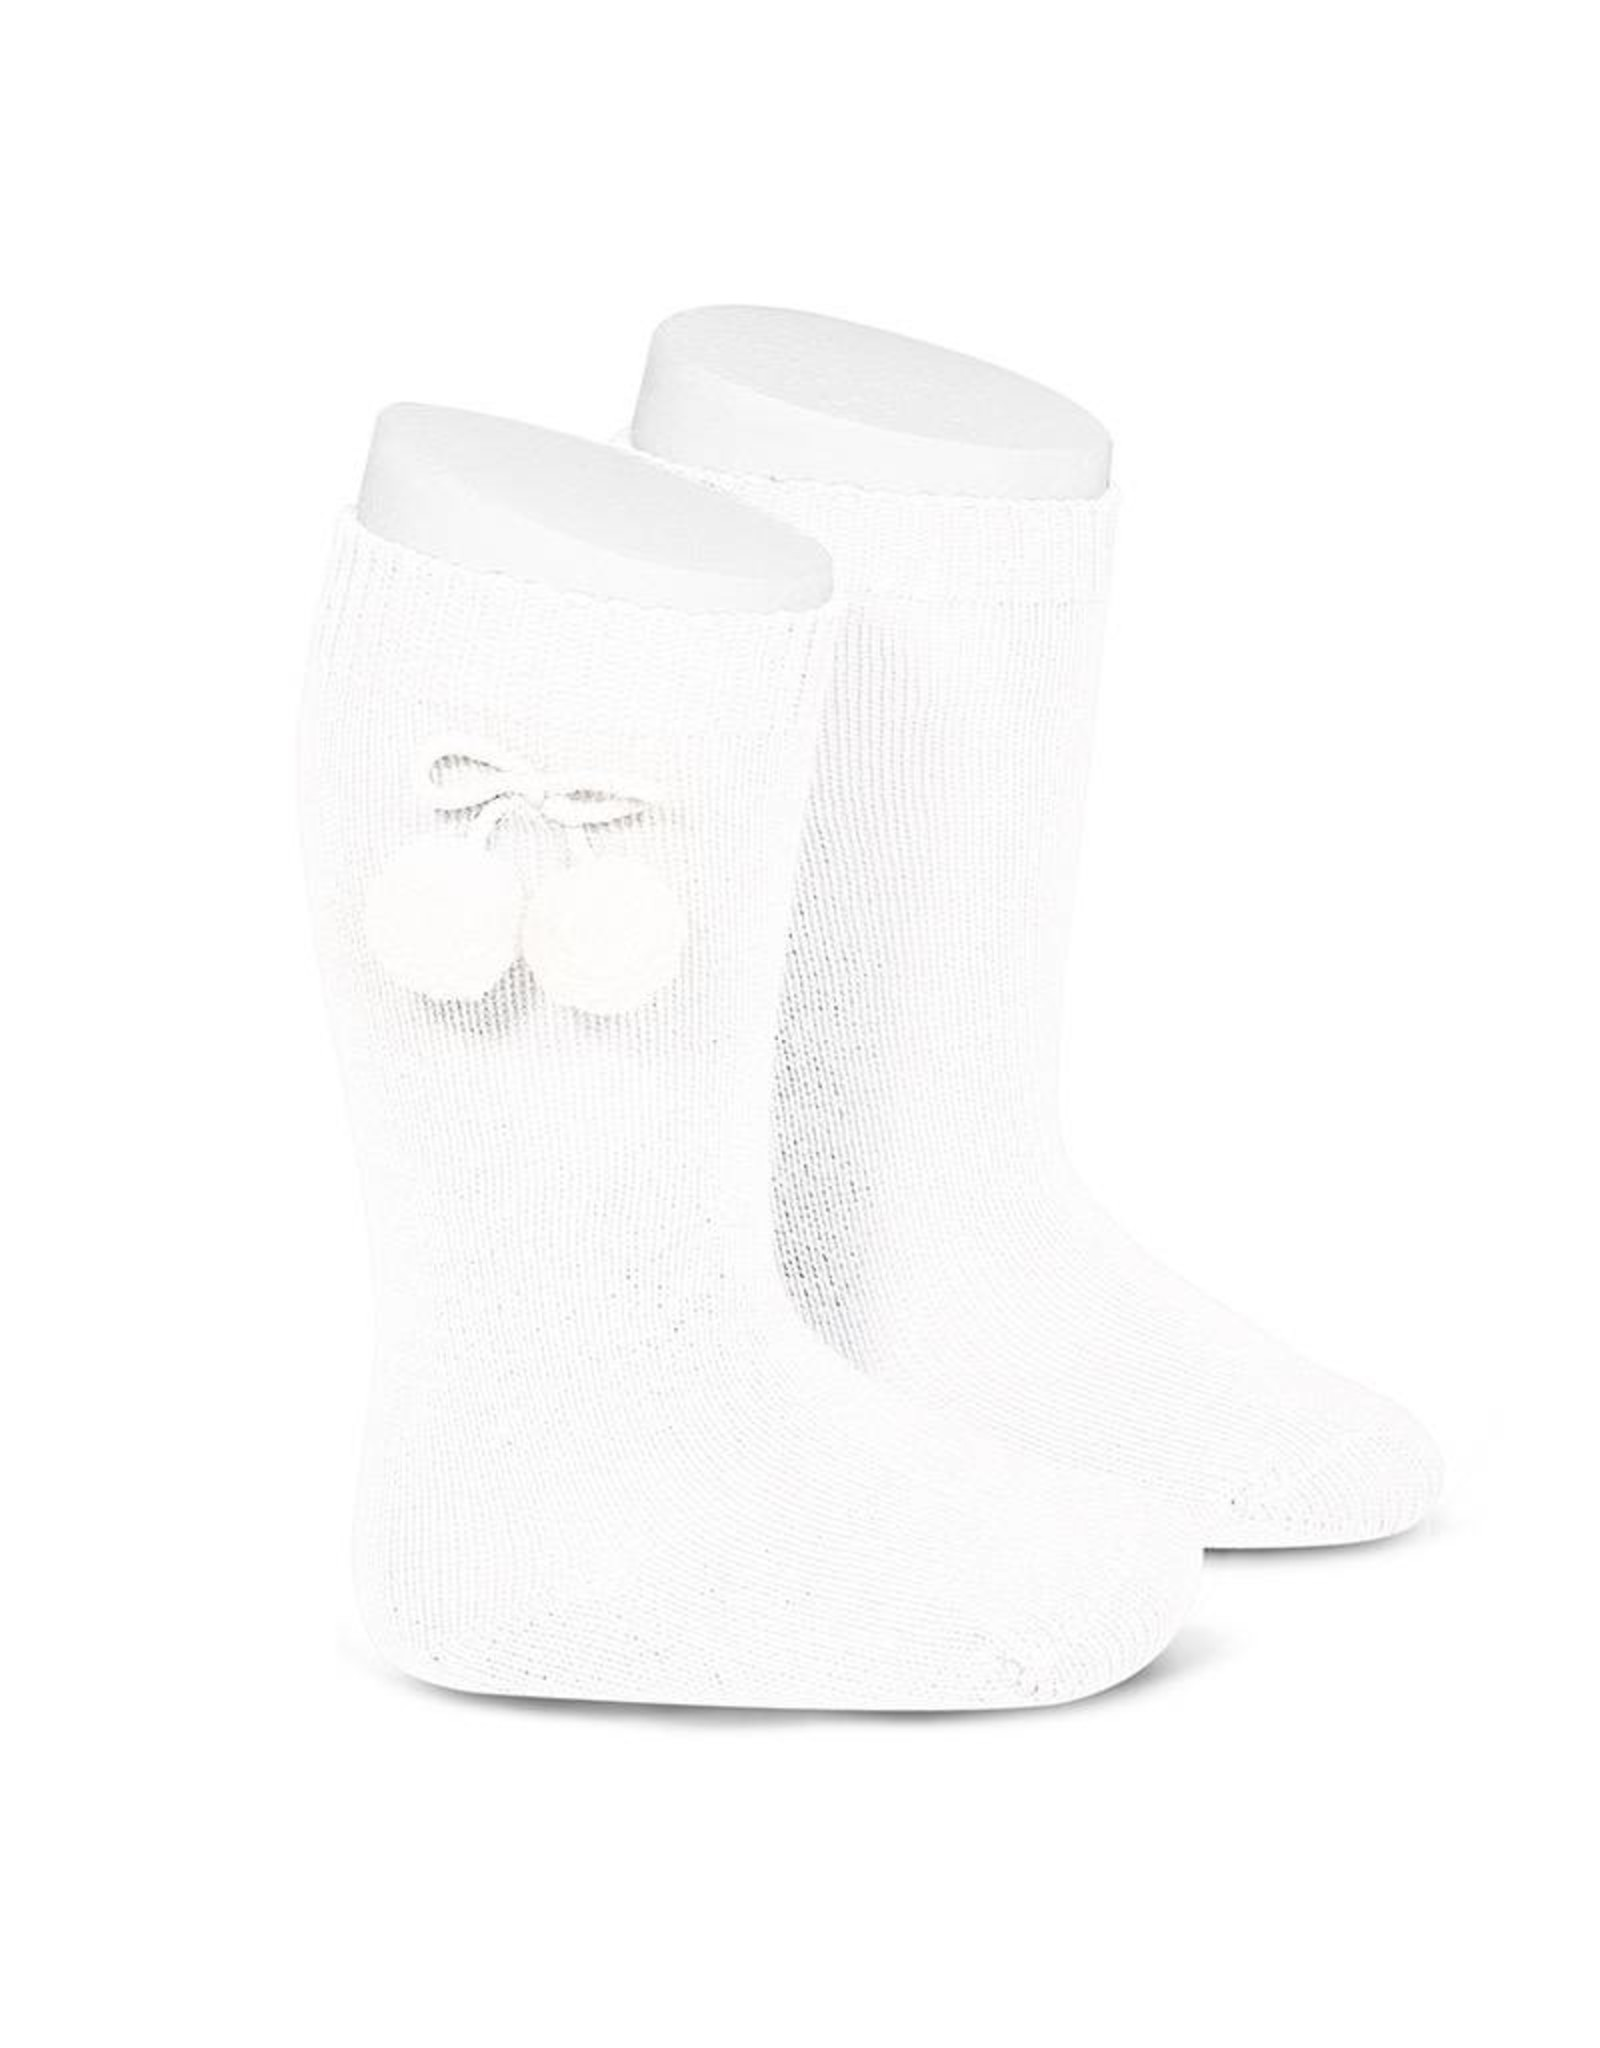 CONDOR White Knee-High Pom Pom Socks